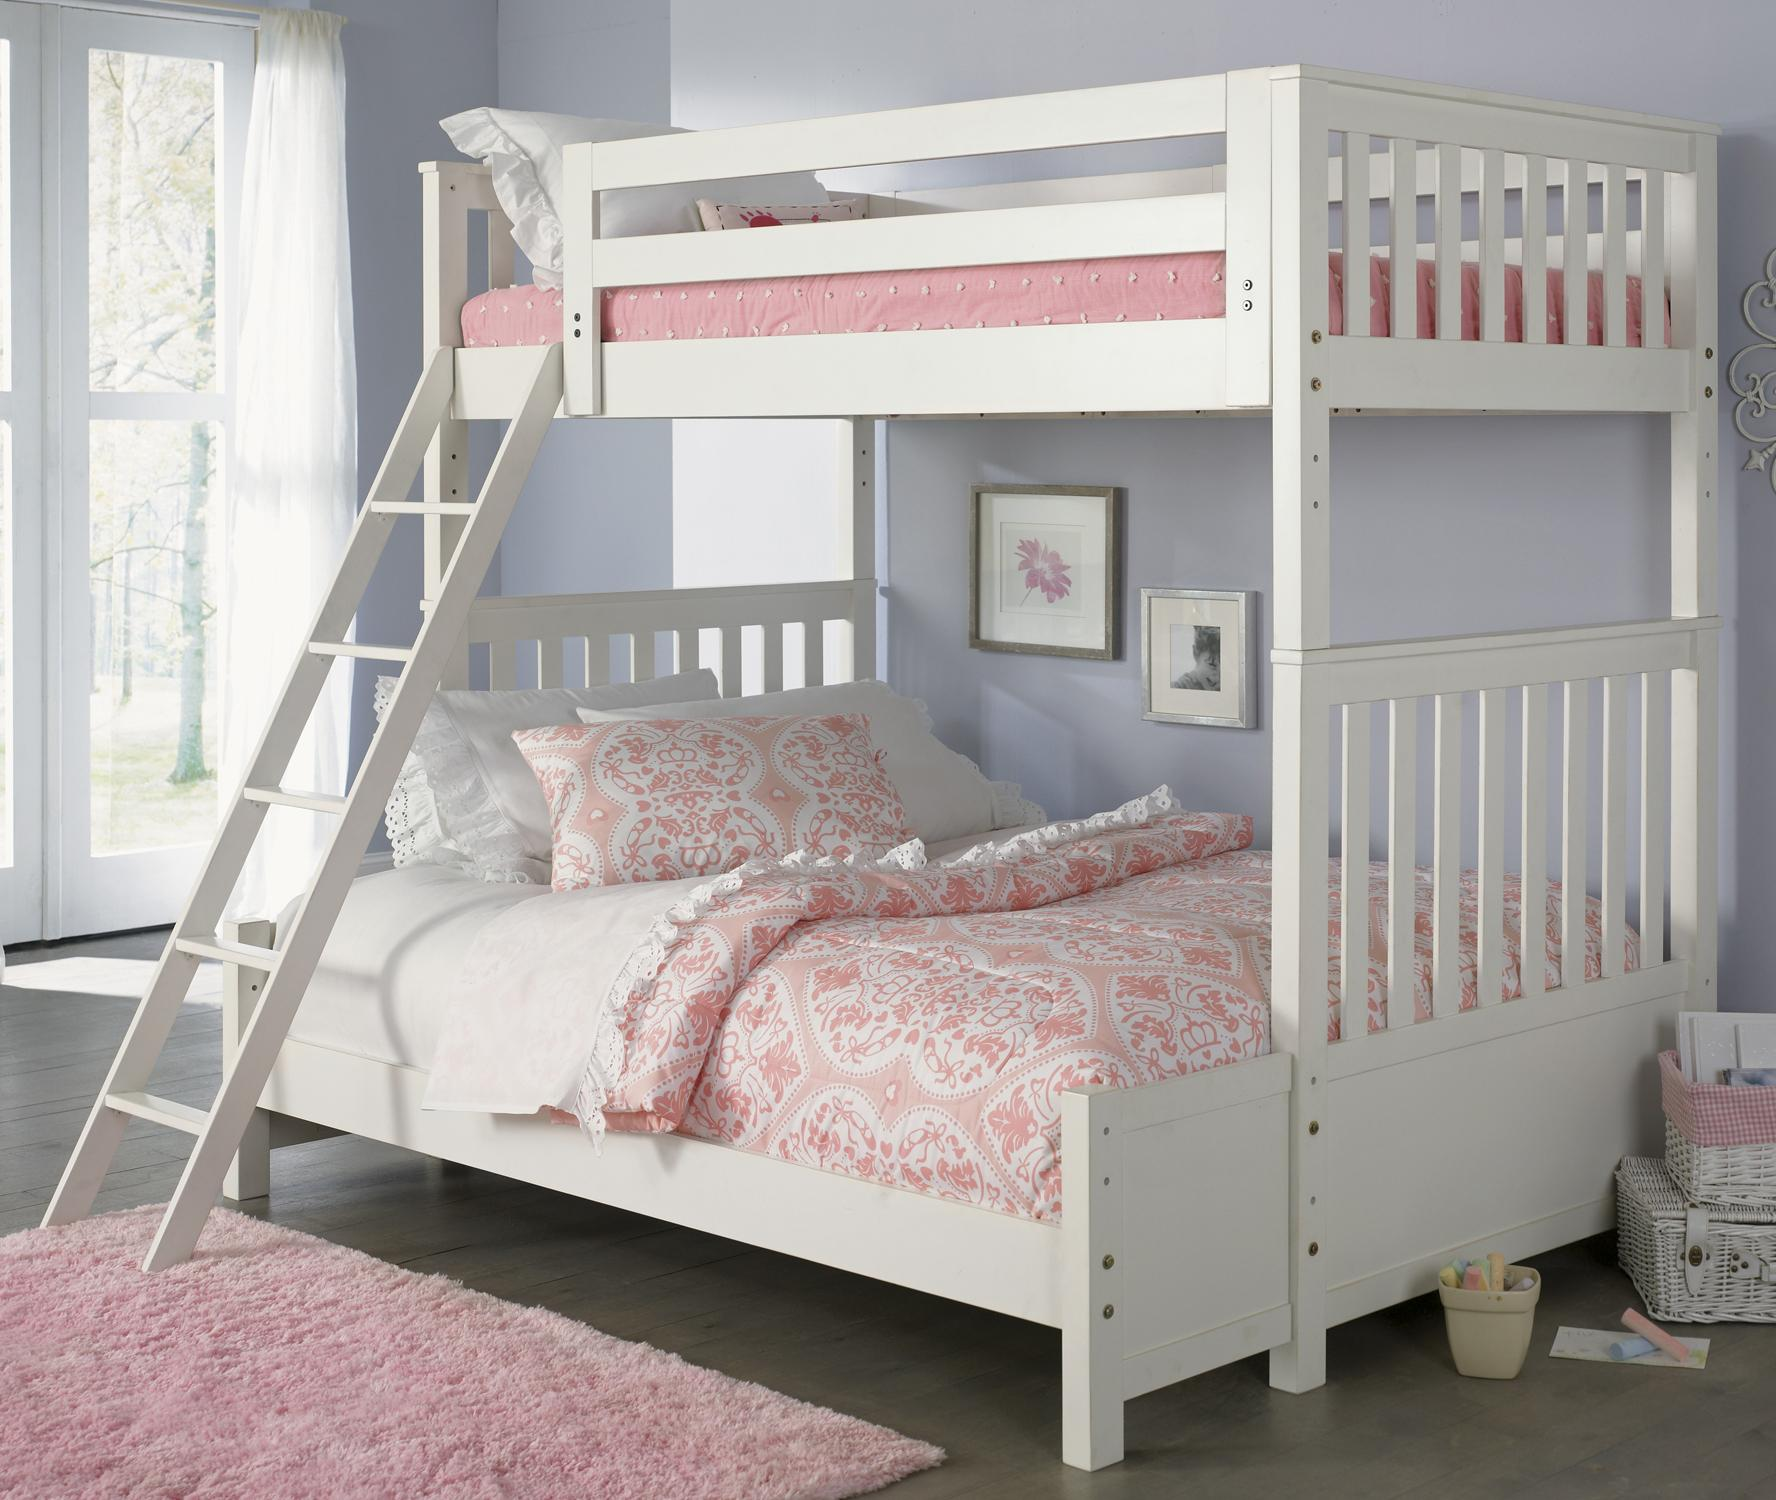 Liberty Furniture Arielle Youth Bedroom Twin Over Twin Bunkbed - Item Number: 352-YBUNK-SET203